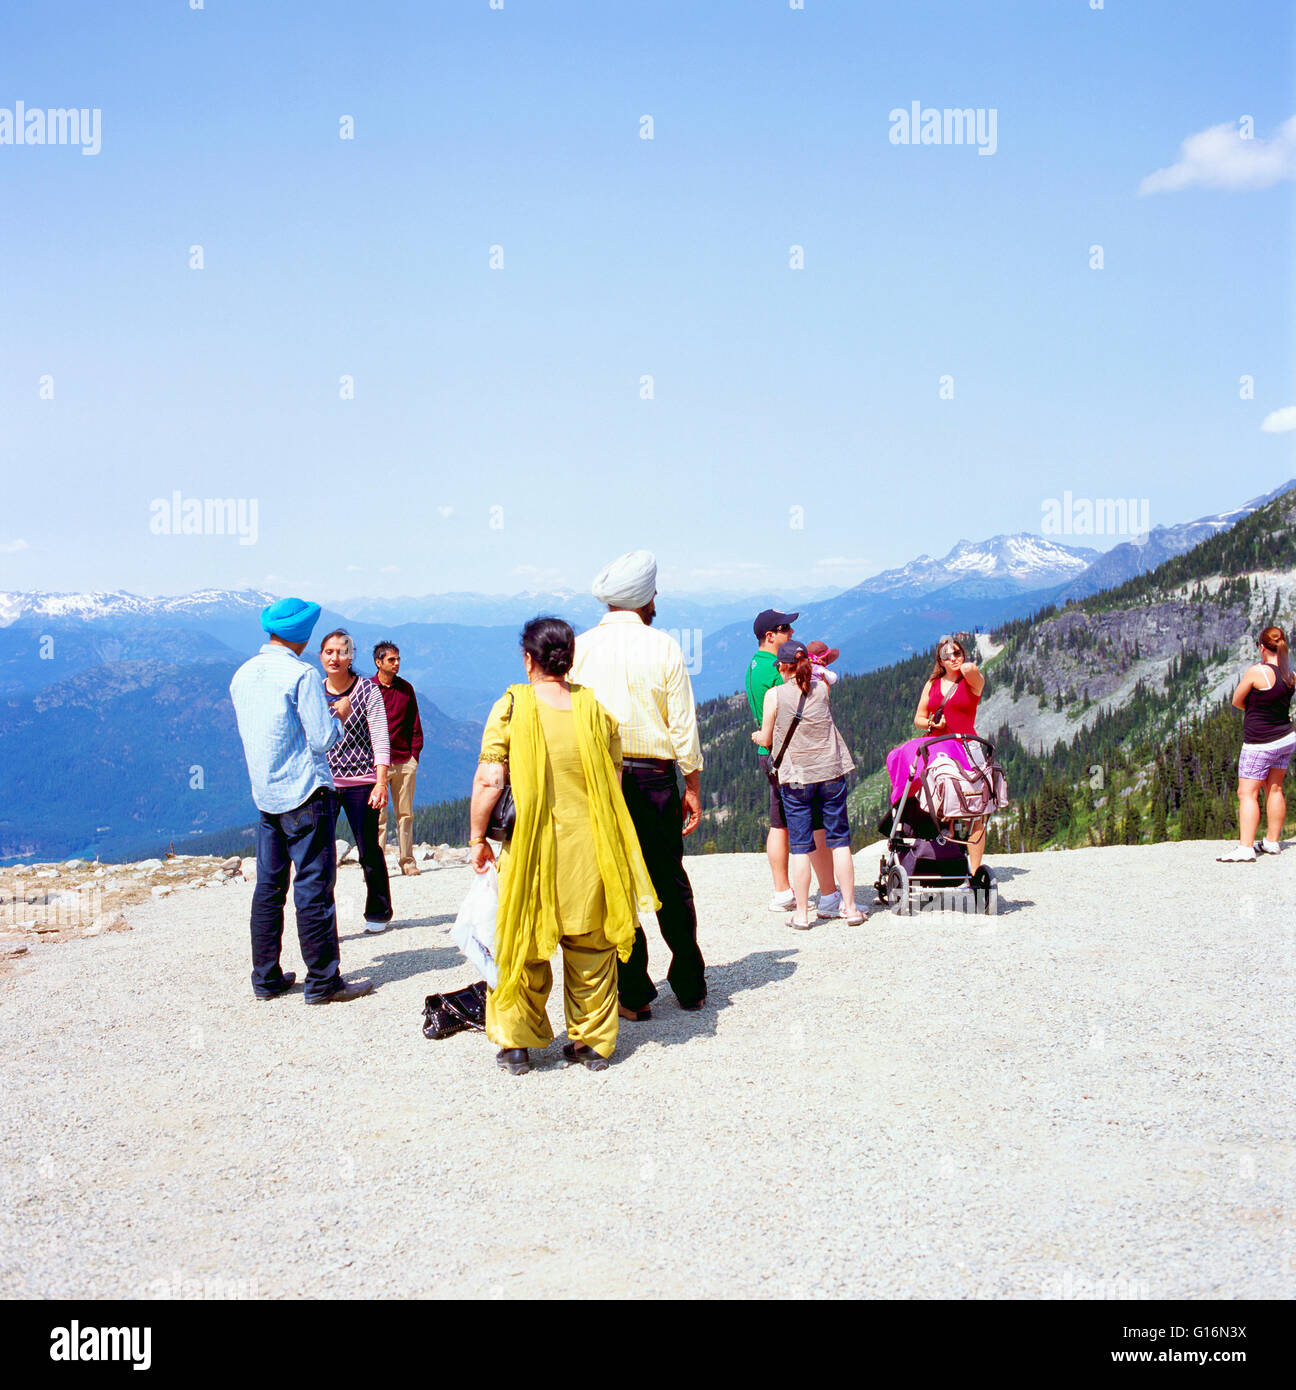 East Indian / South Asian i turisti in visita a Lookout a Whistler, BC, British Columbia, Canada, estate Immagini Stock